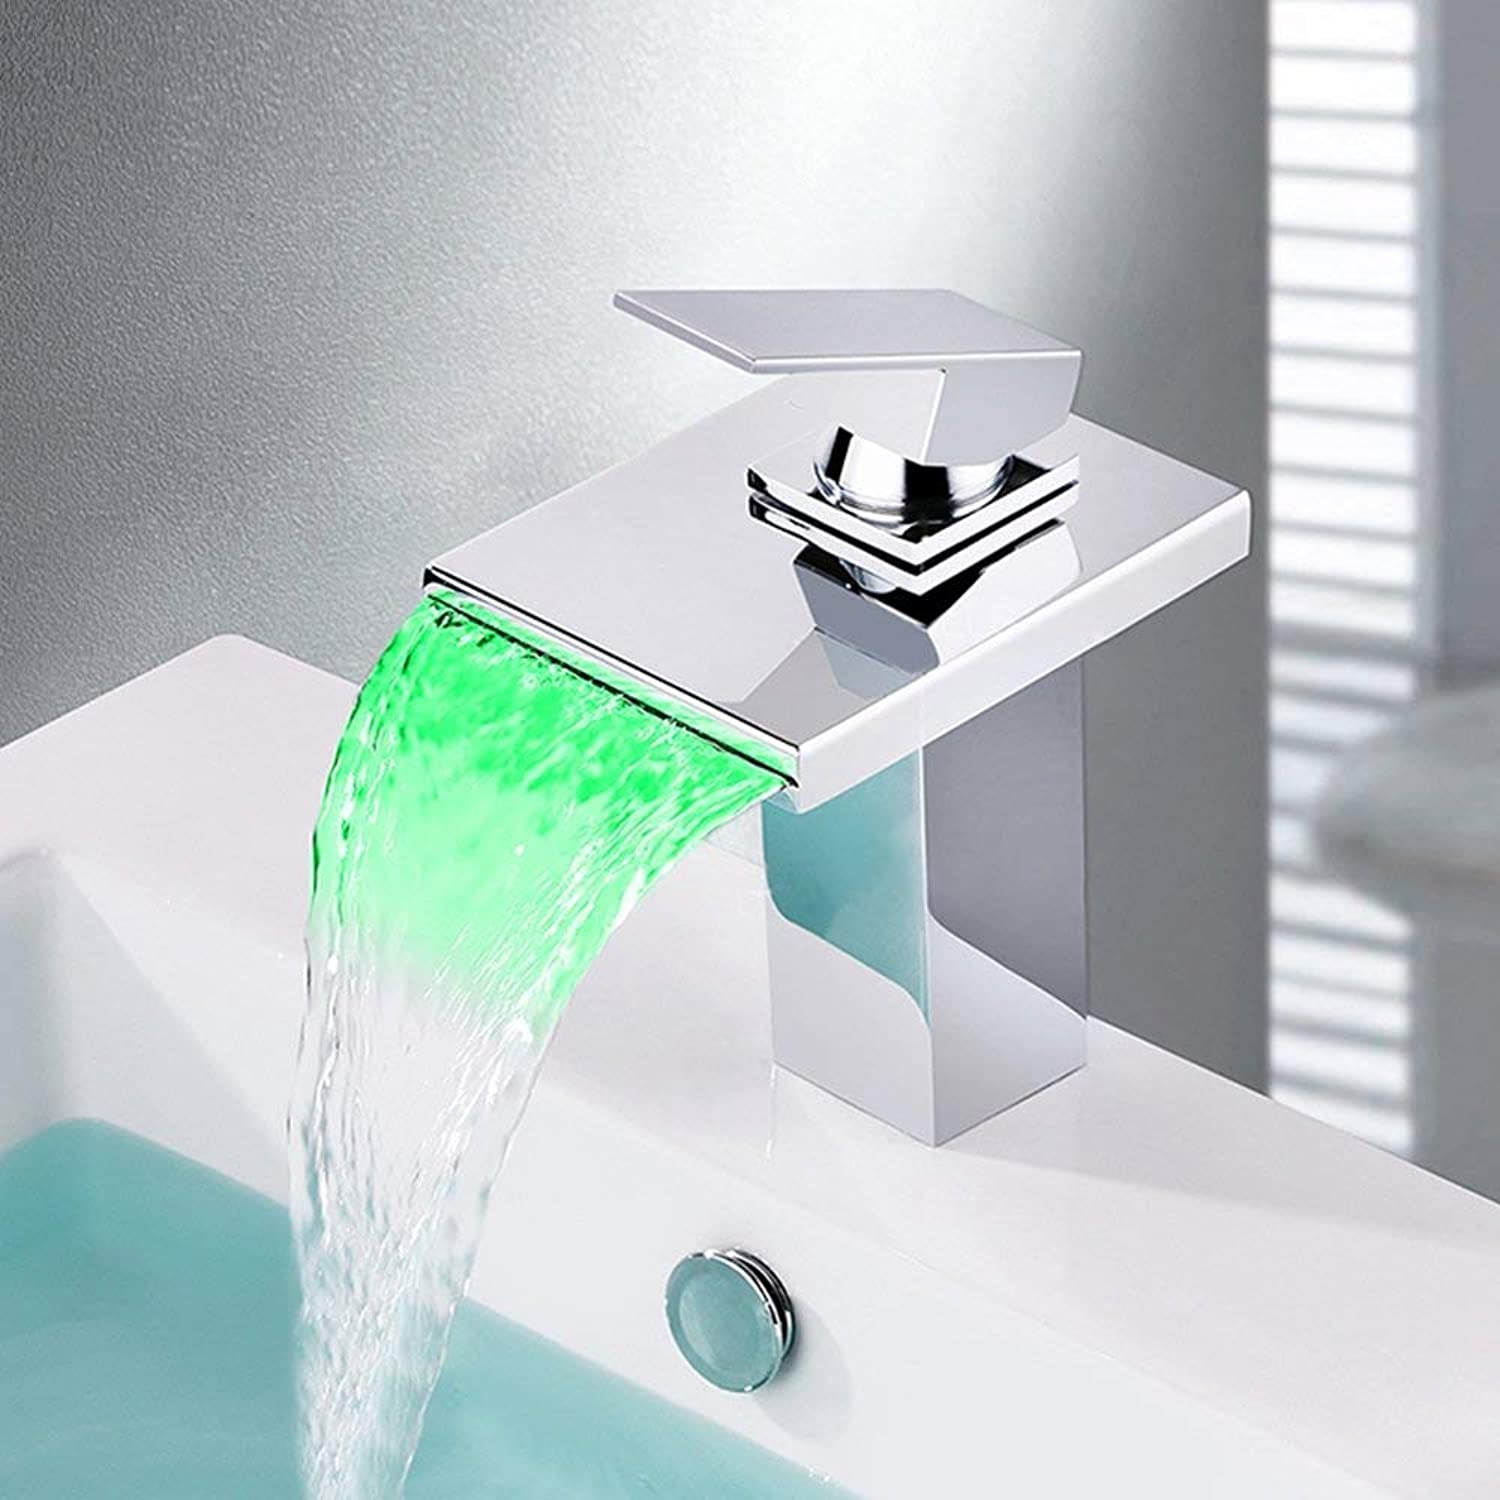 Fashion Chrome-Plated LED Temperature Control Waterfall Washbasin Faucet;European Single-Hole Hot And Cold Water Mixing Valve Bathroom Sink Faucet Hotel Apartment DIY Bathroom